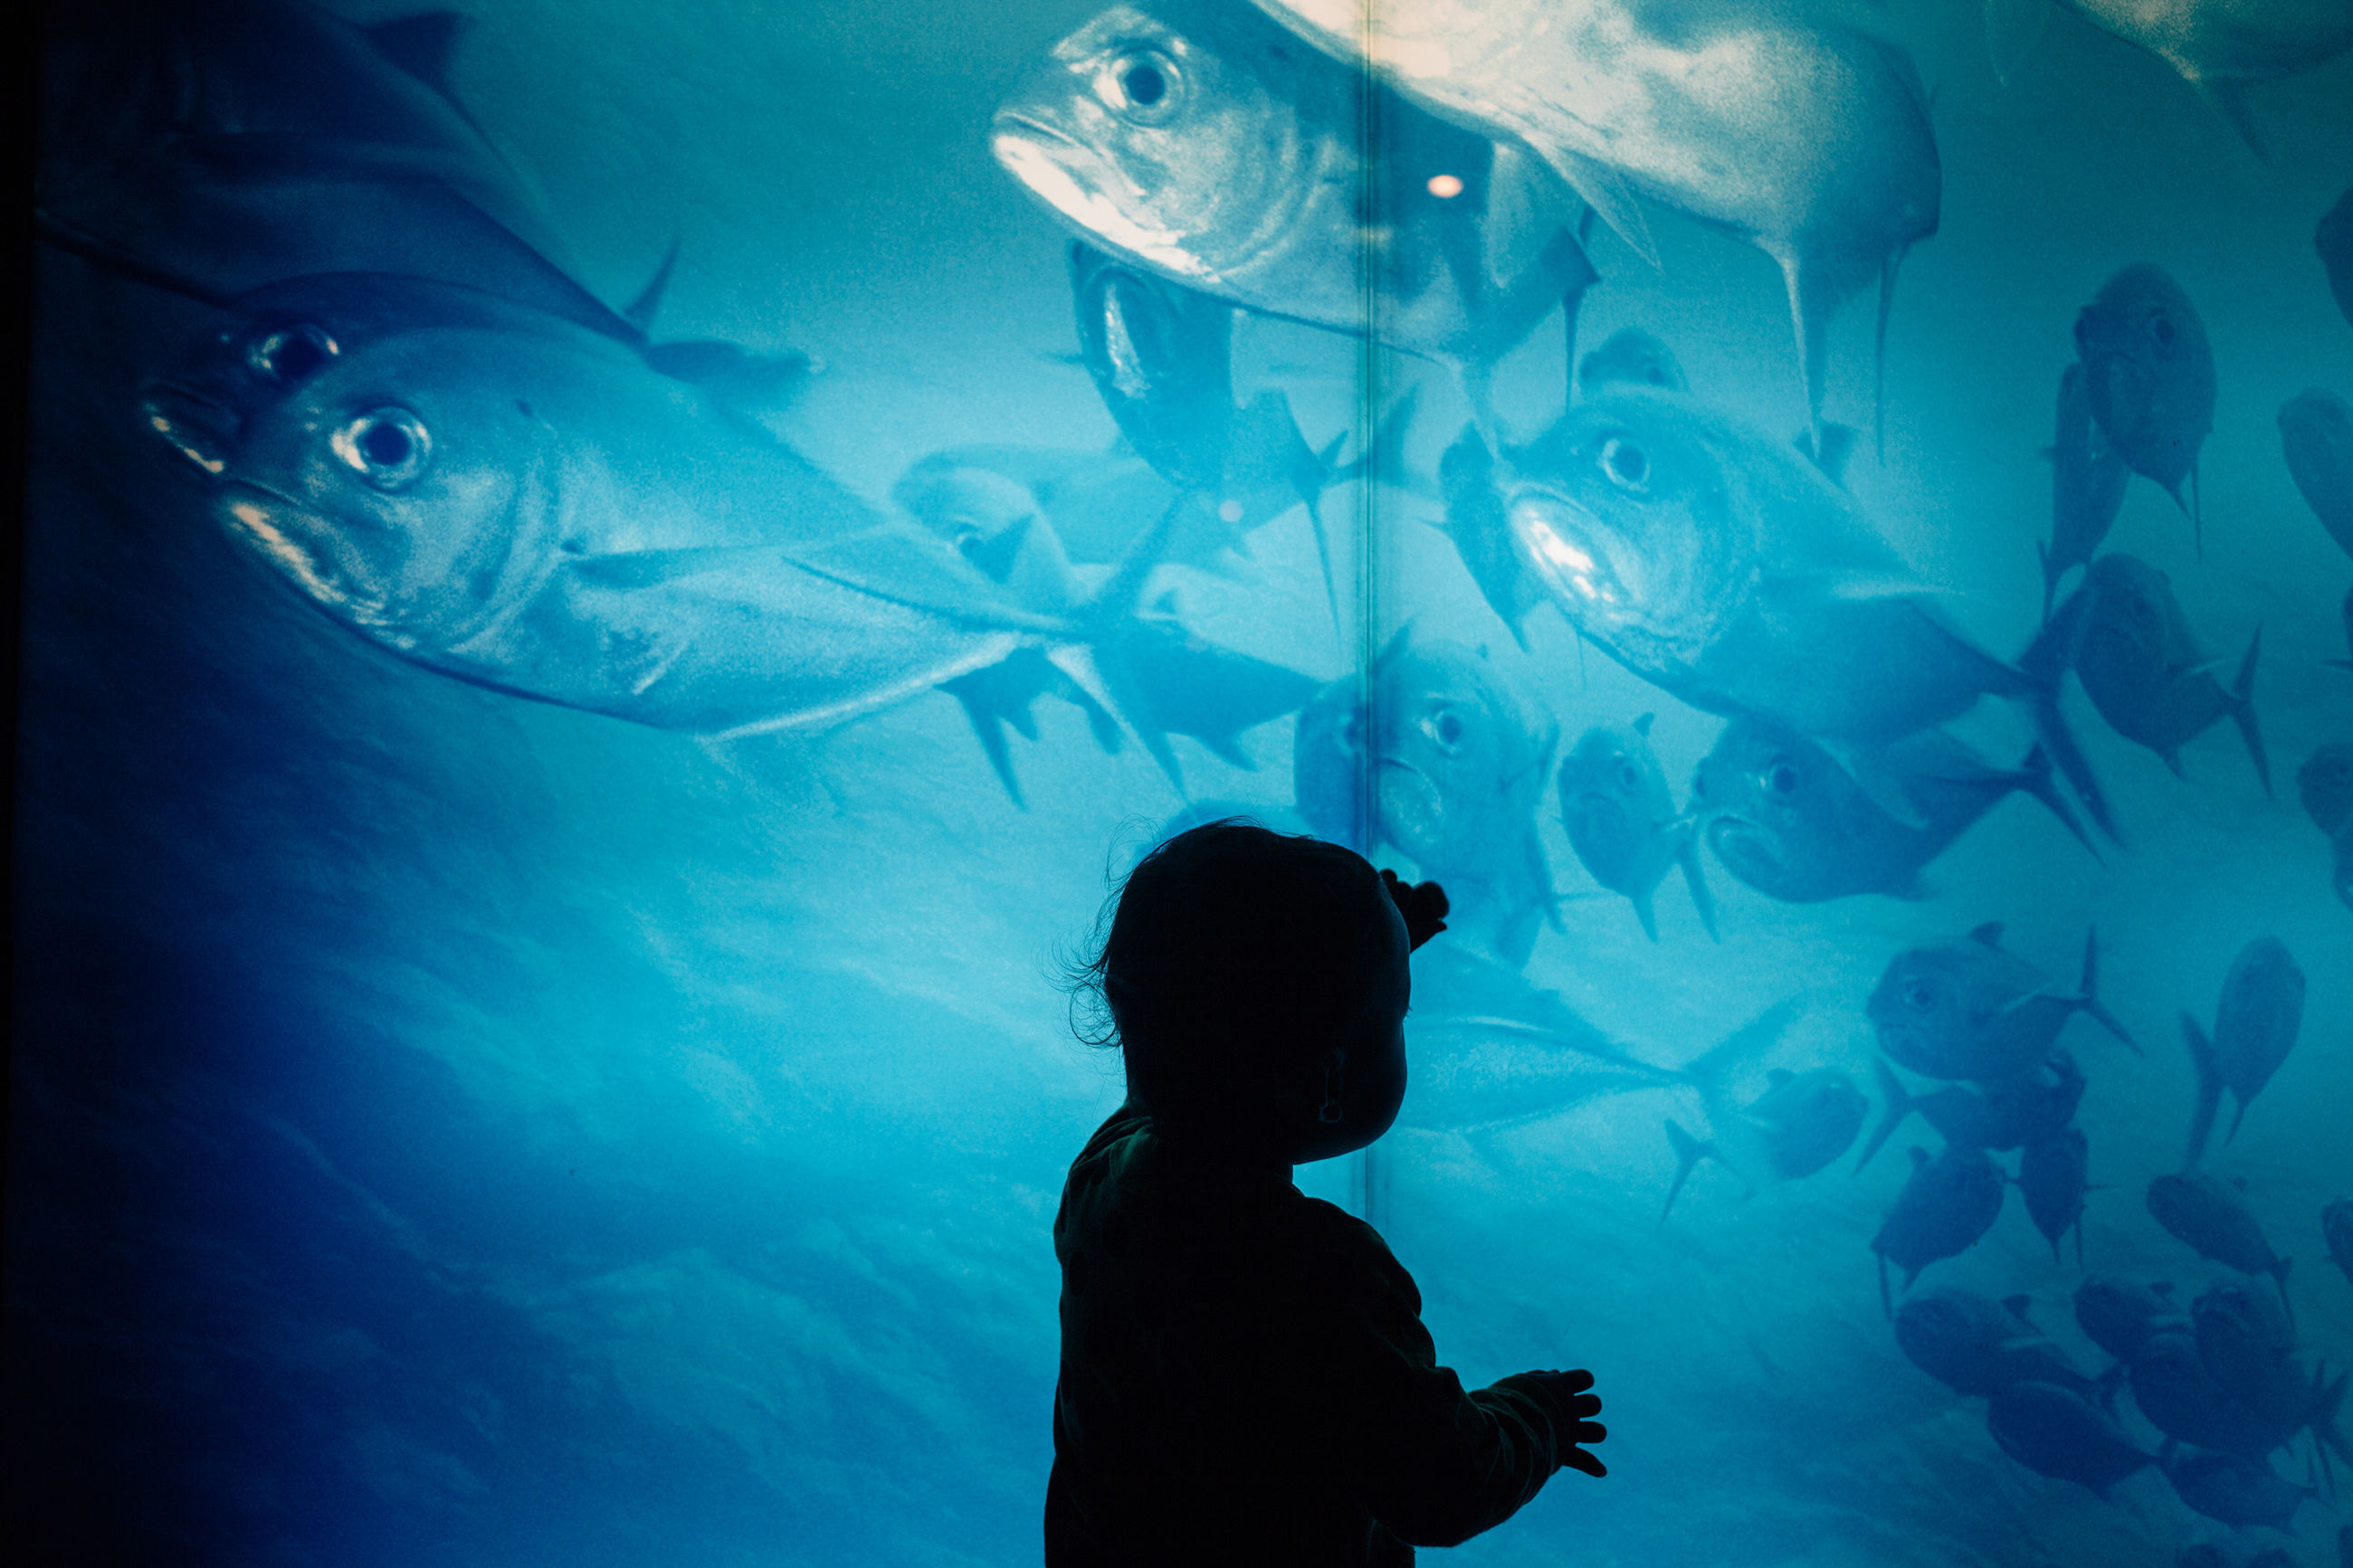 fish, aquarium, underwater, animal themes, sea life, silhouette, swimming, sea, one person, people, large group of animals, water, indoors, nature, adult, undersea, adults only, day